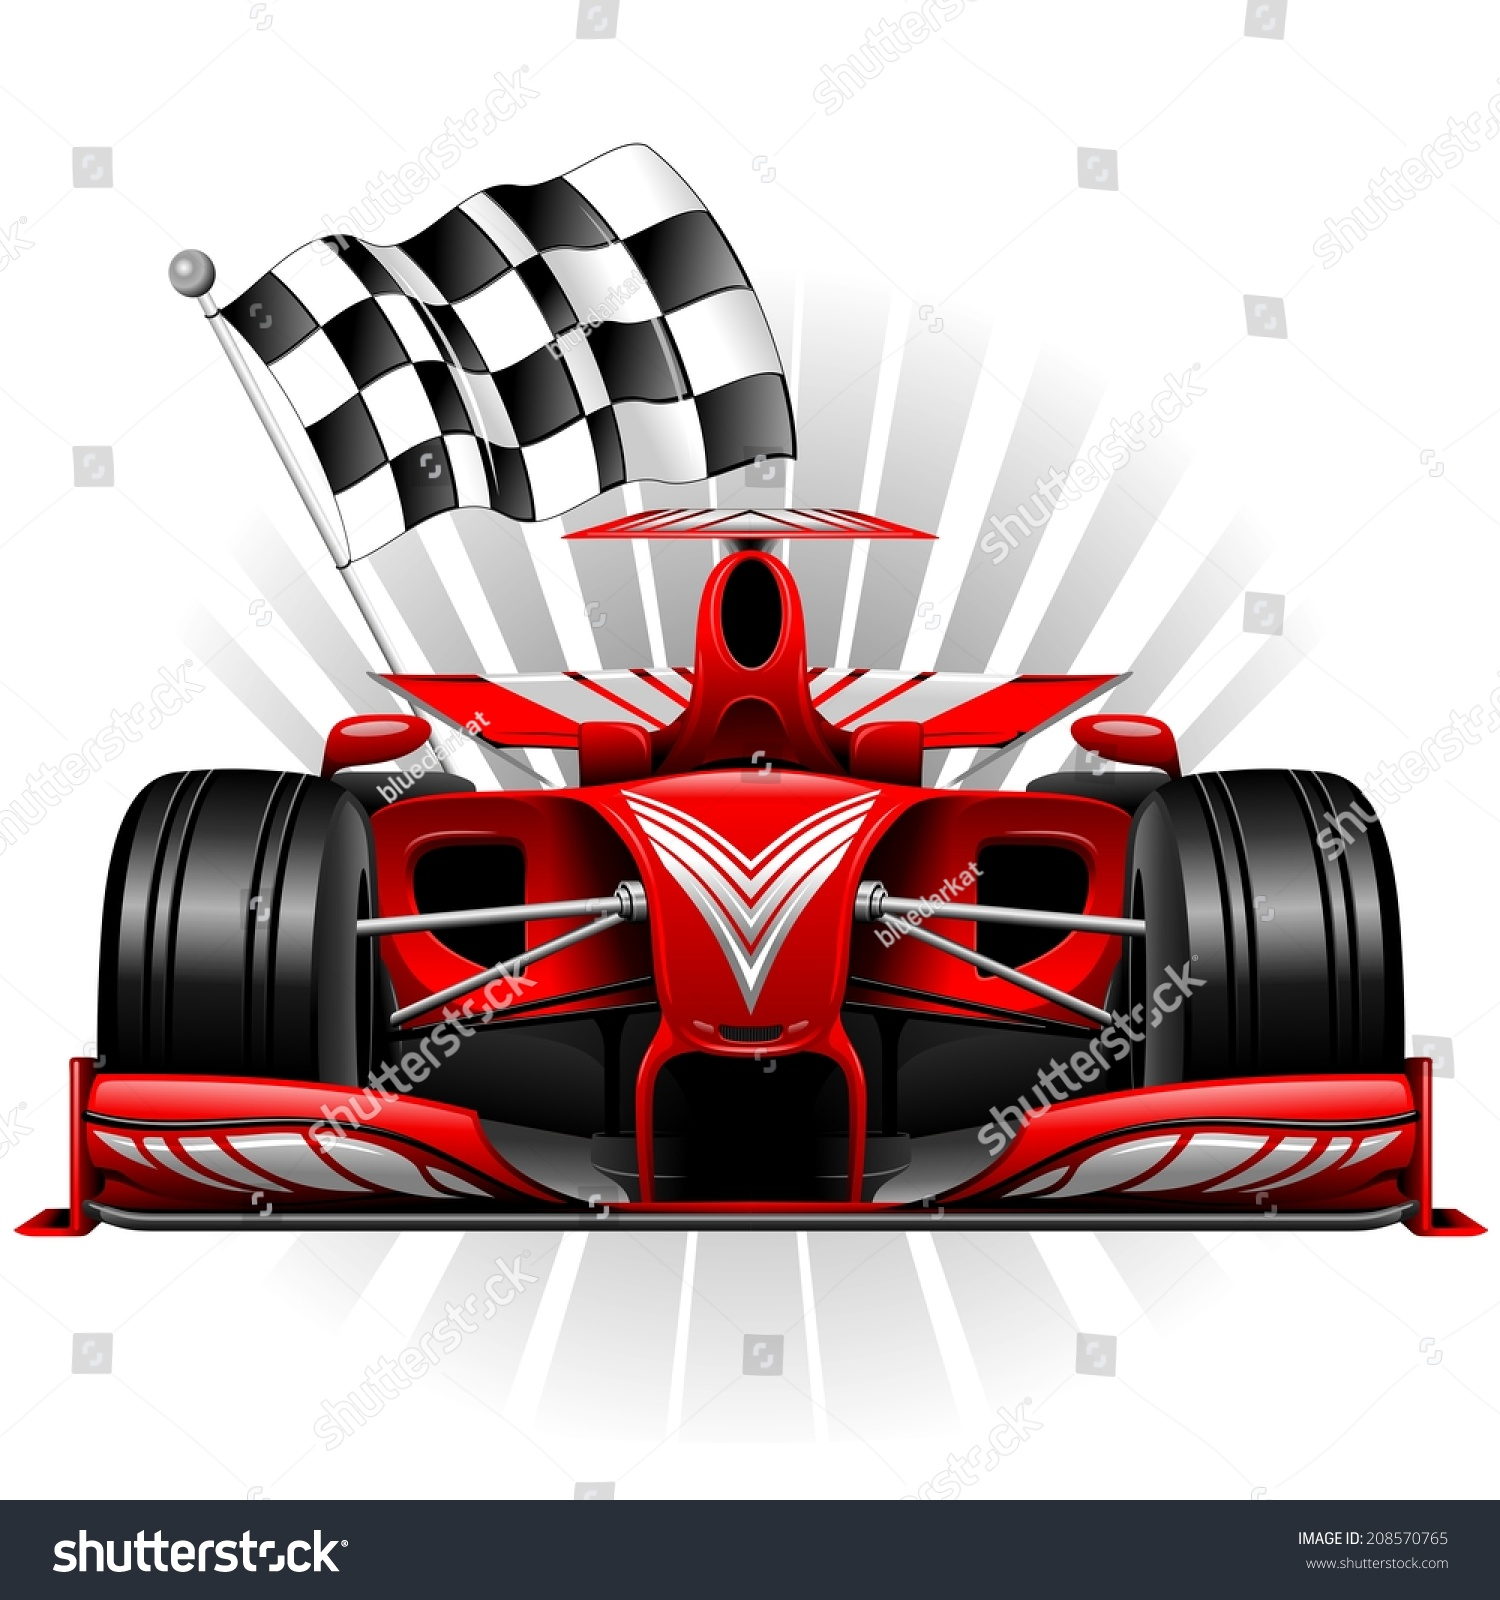 Design car flags - Red Race Car With Checkered Flag